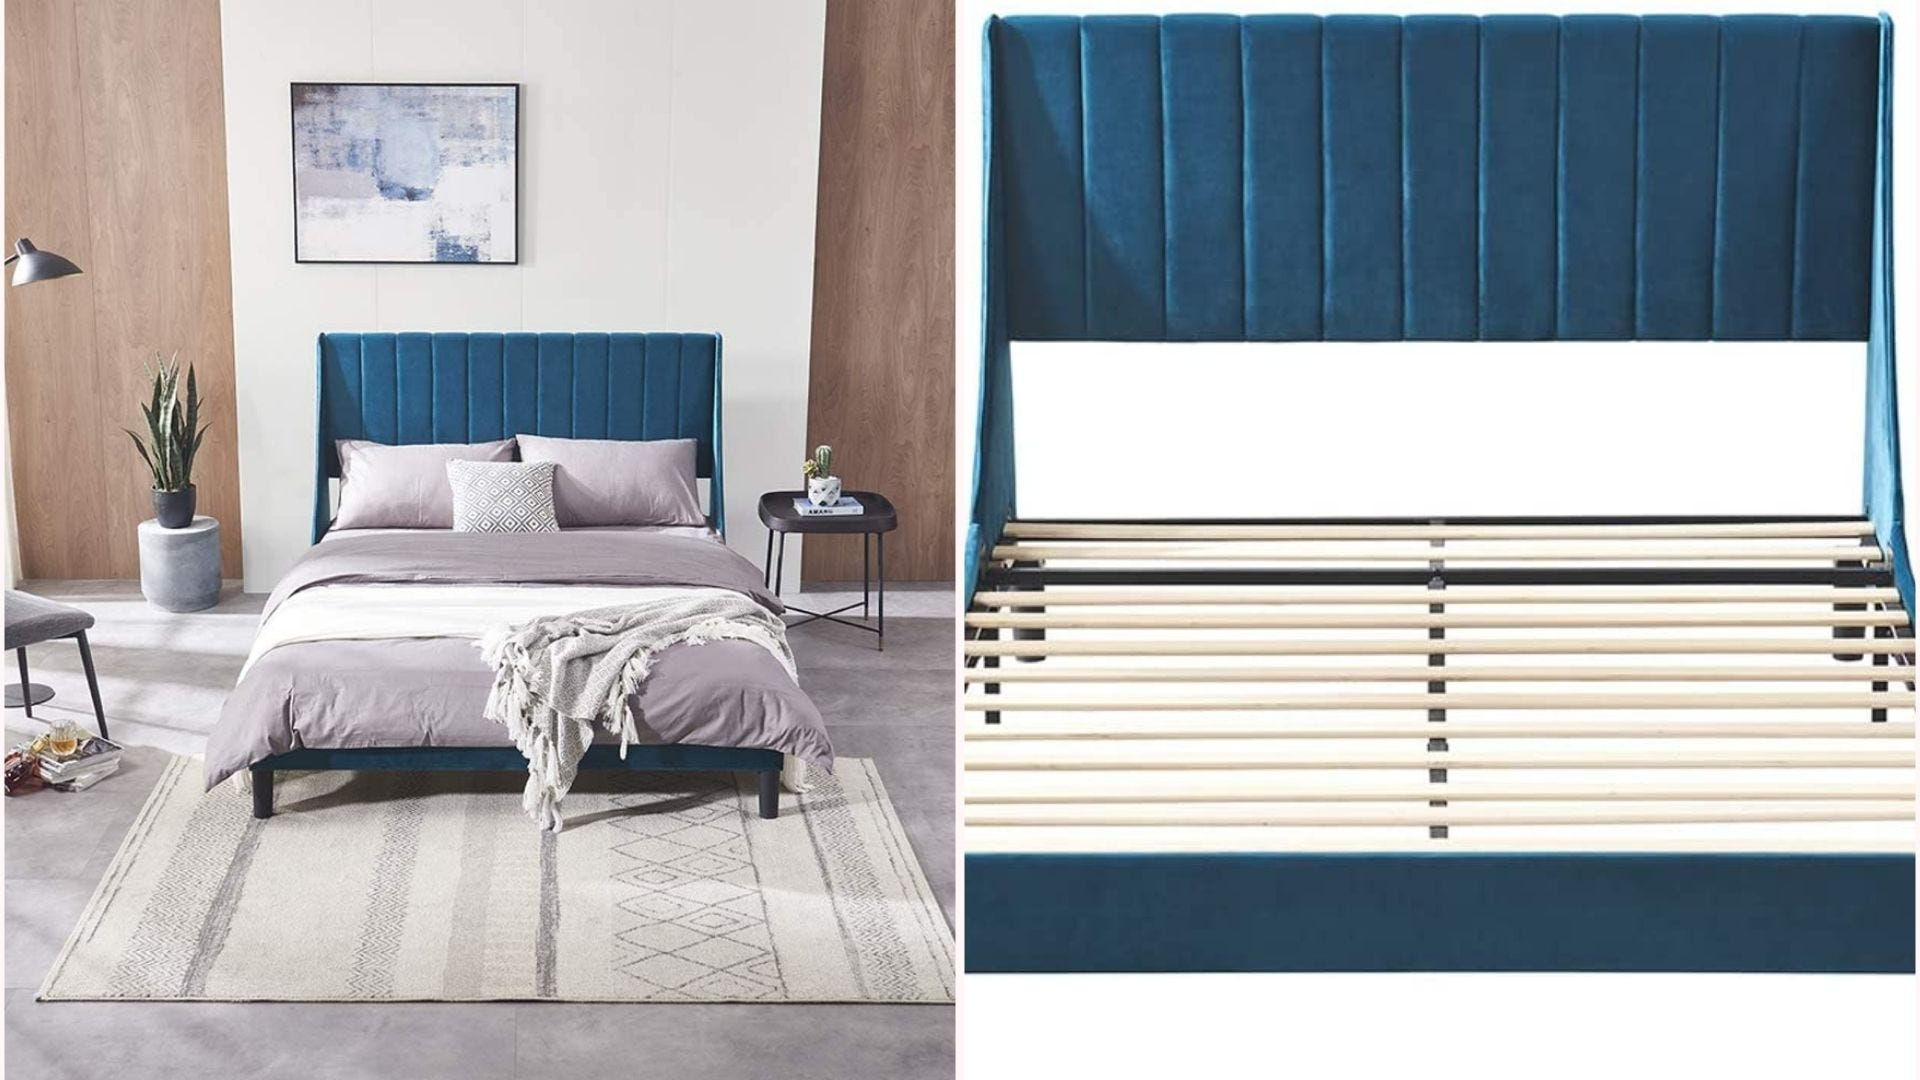 a teal velveteen bed frame with headboard and wooden slats